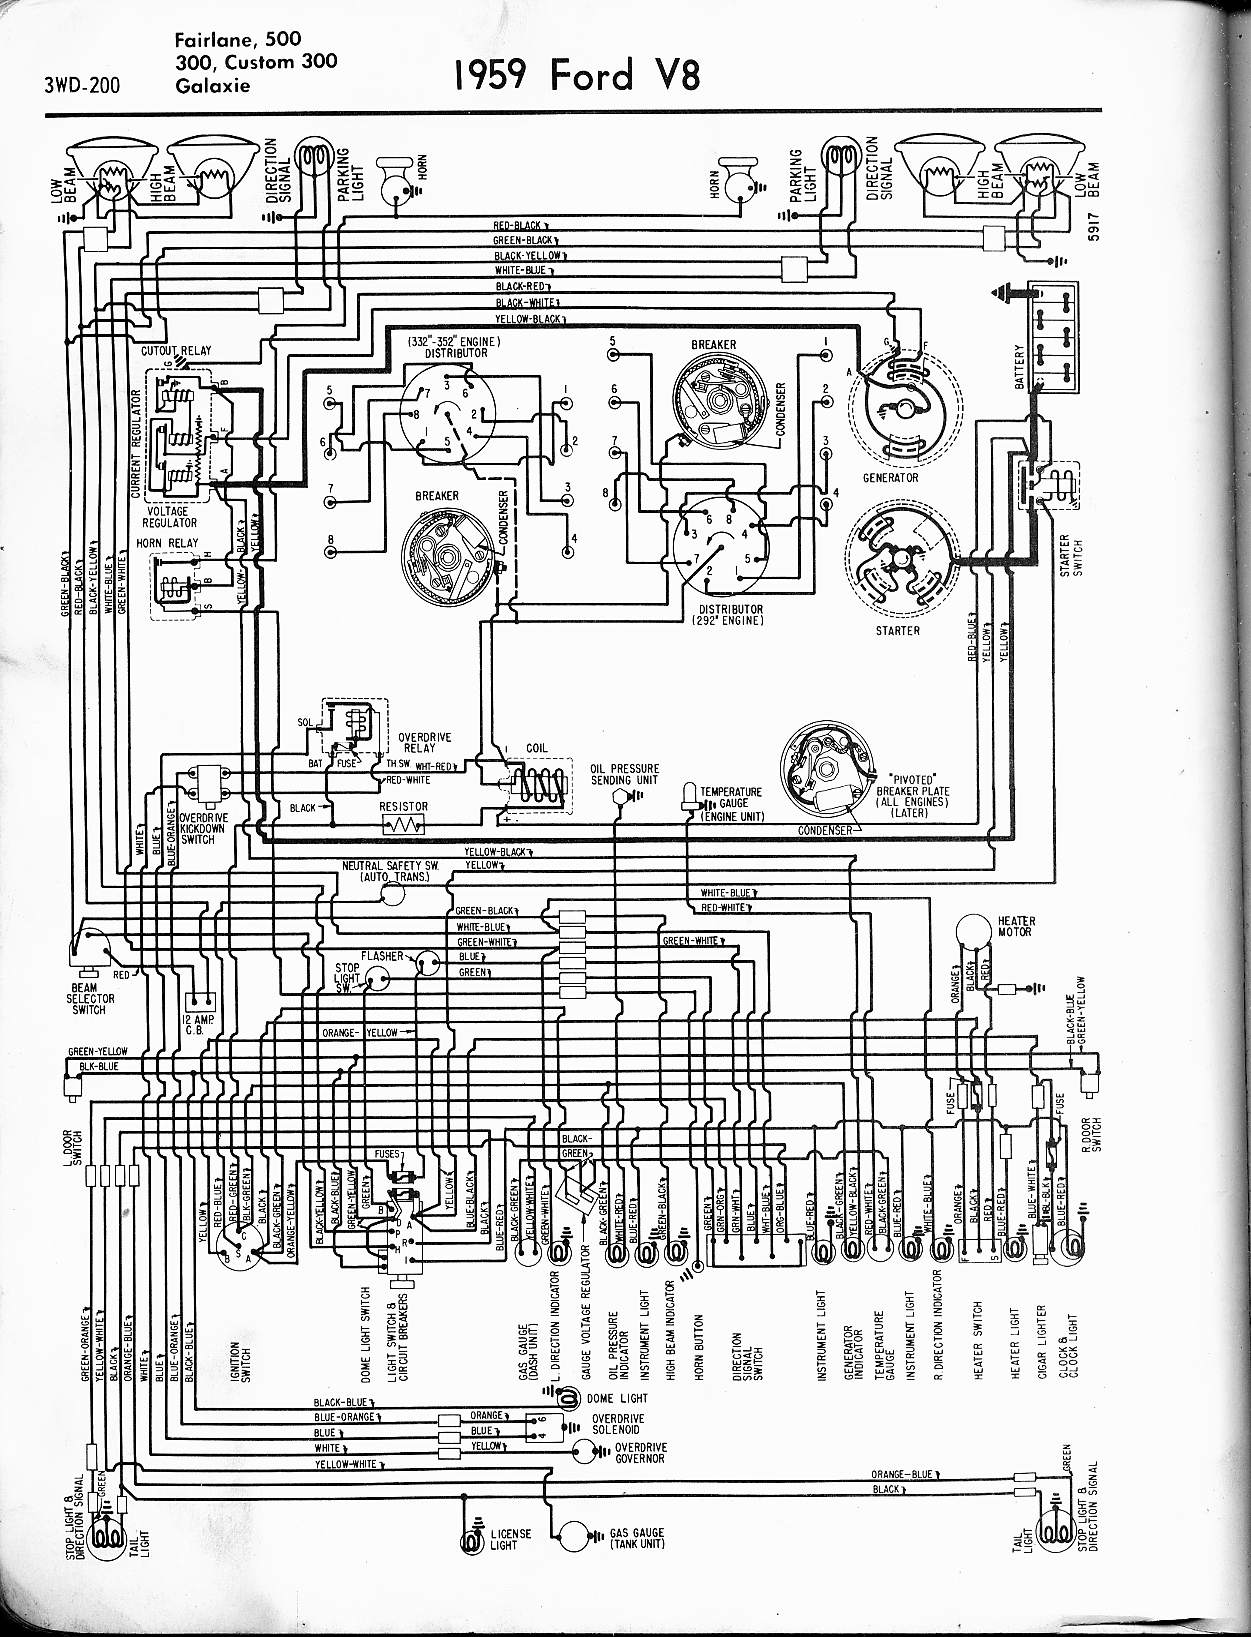 57 65 Ford Wiring Diagrams Cat 5 Cable Diagram Free Download Pictures 1959 V8 Fairlane 500 300 Custom